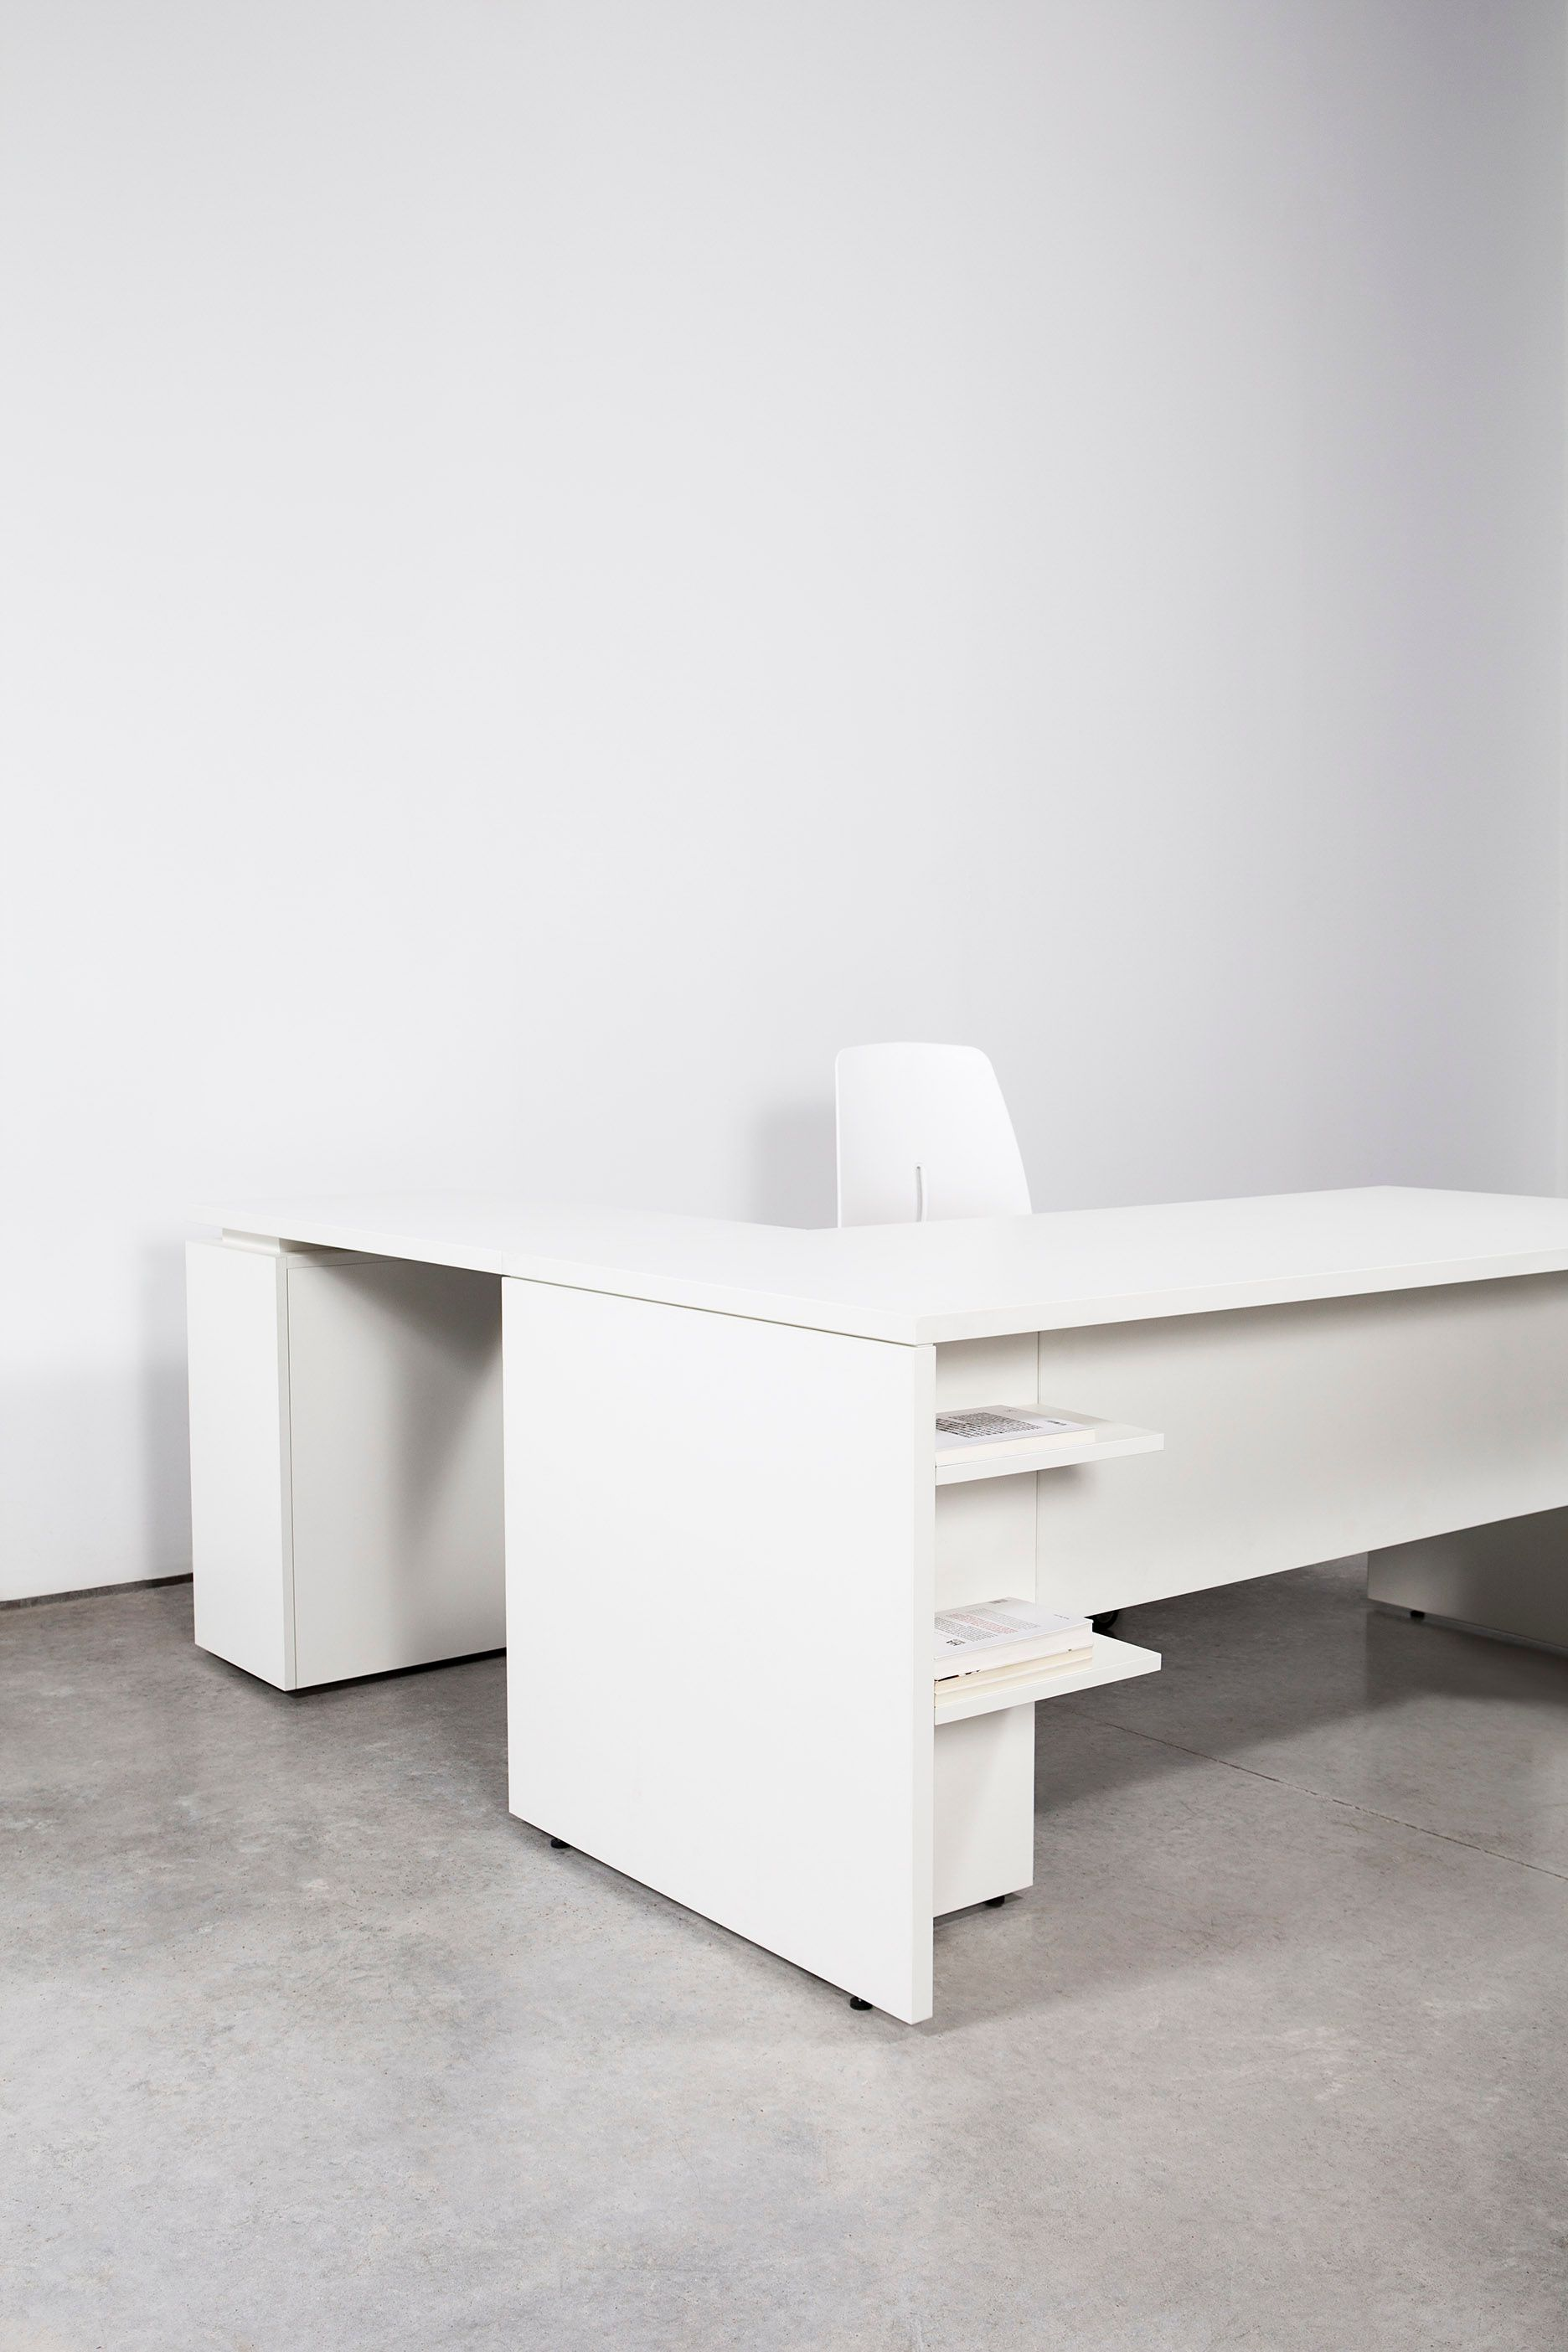 Bat Office Table System Designed By Francesc Rifé Available In Melamine And Wood